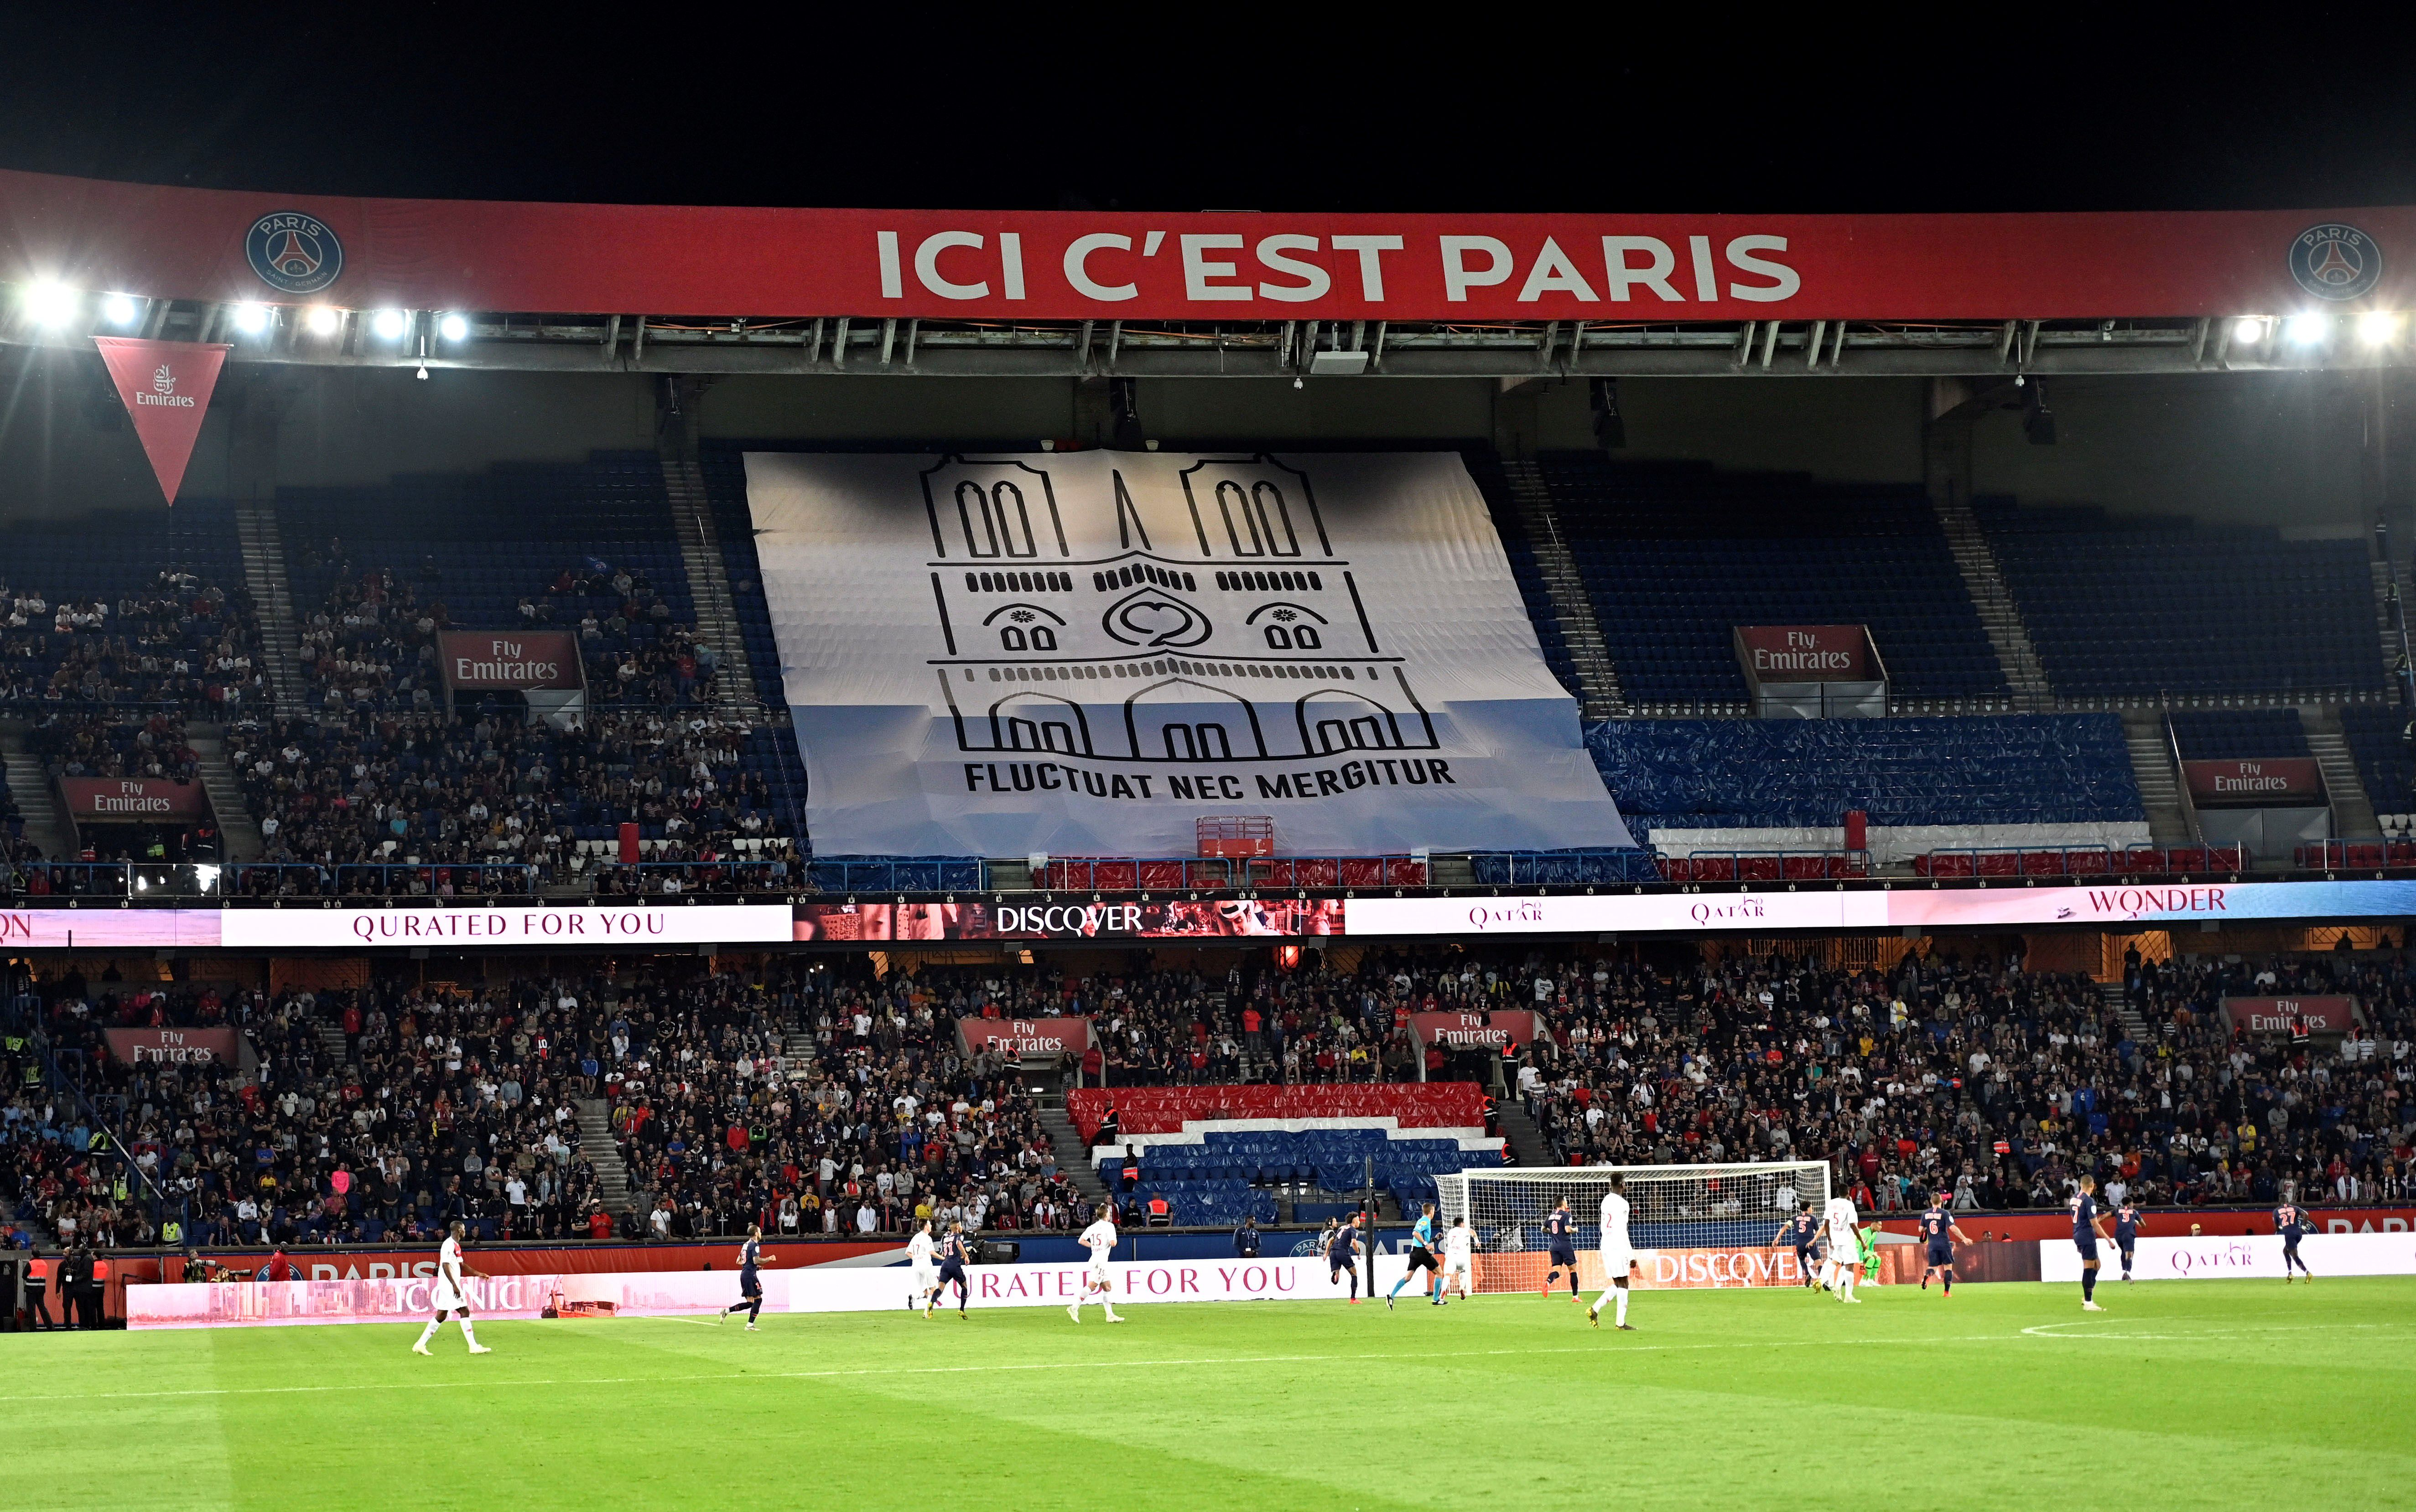 A banner showing a drawing of Notre Dame cathedral is displayed during PSG's game